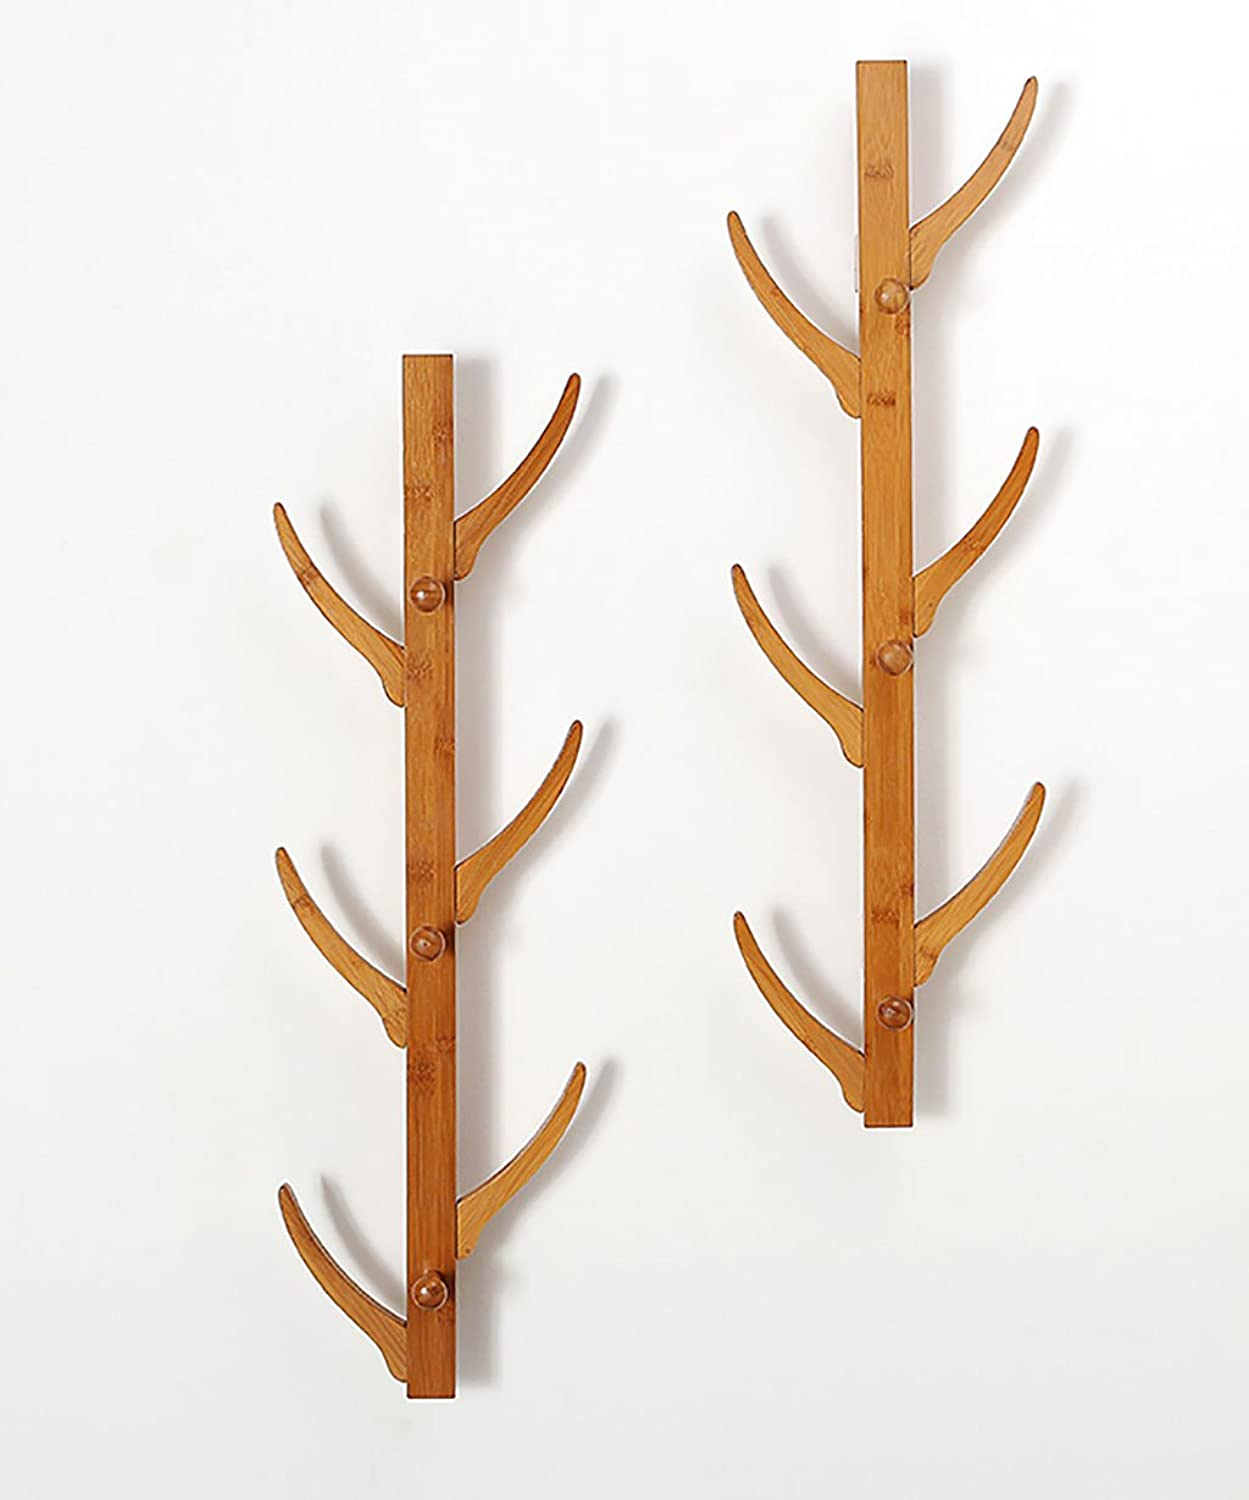 QIANGDA Coat Hat Rack Wall-Mounted Bamboo with 6 8 Hooks, 2578cm 25100cm (9.829.5 inches 9.839.4 inches) Optional (Size   78cm-2 Pieces)